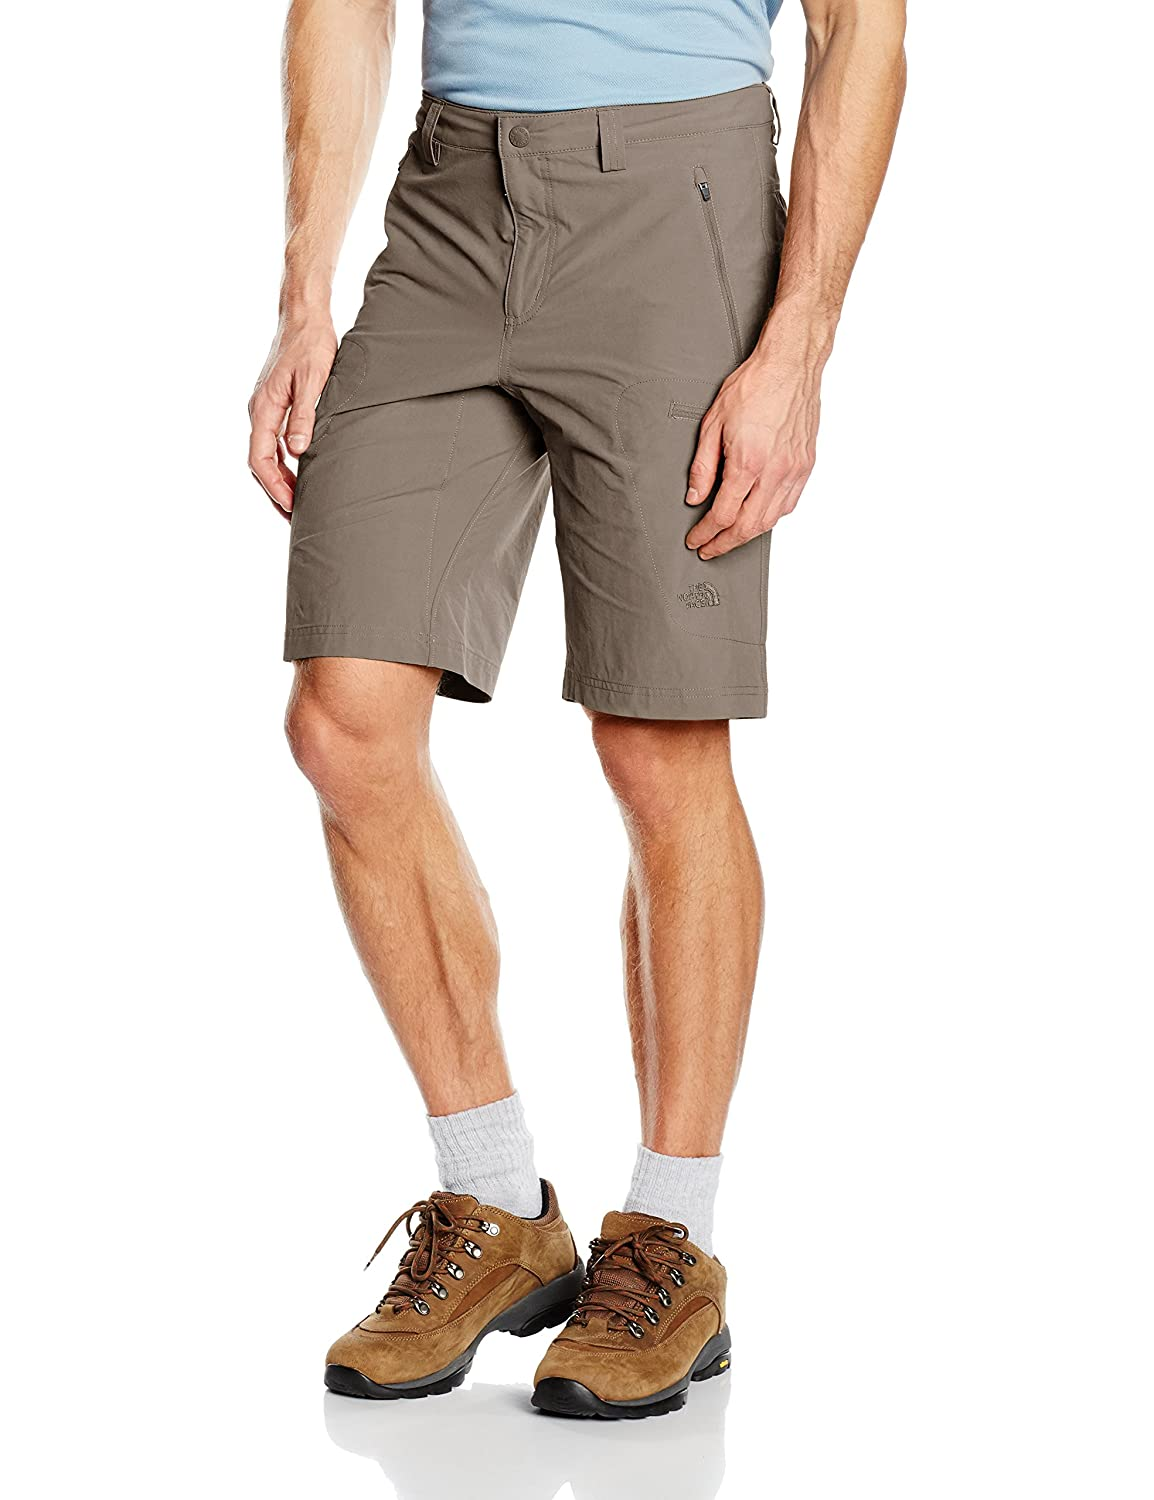 THE NORTH FACE Herren M Exploration Short Weimaraner BRWN